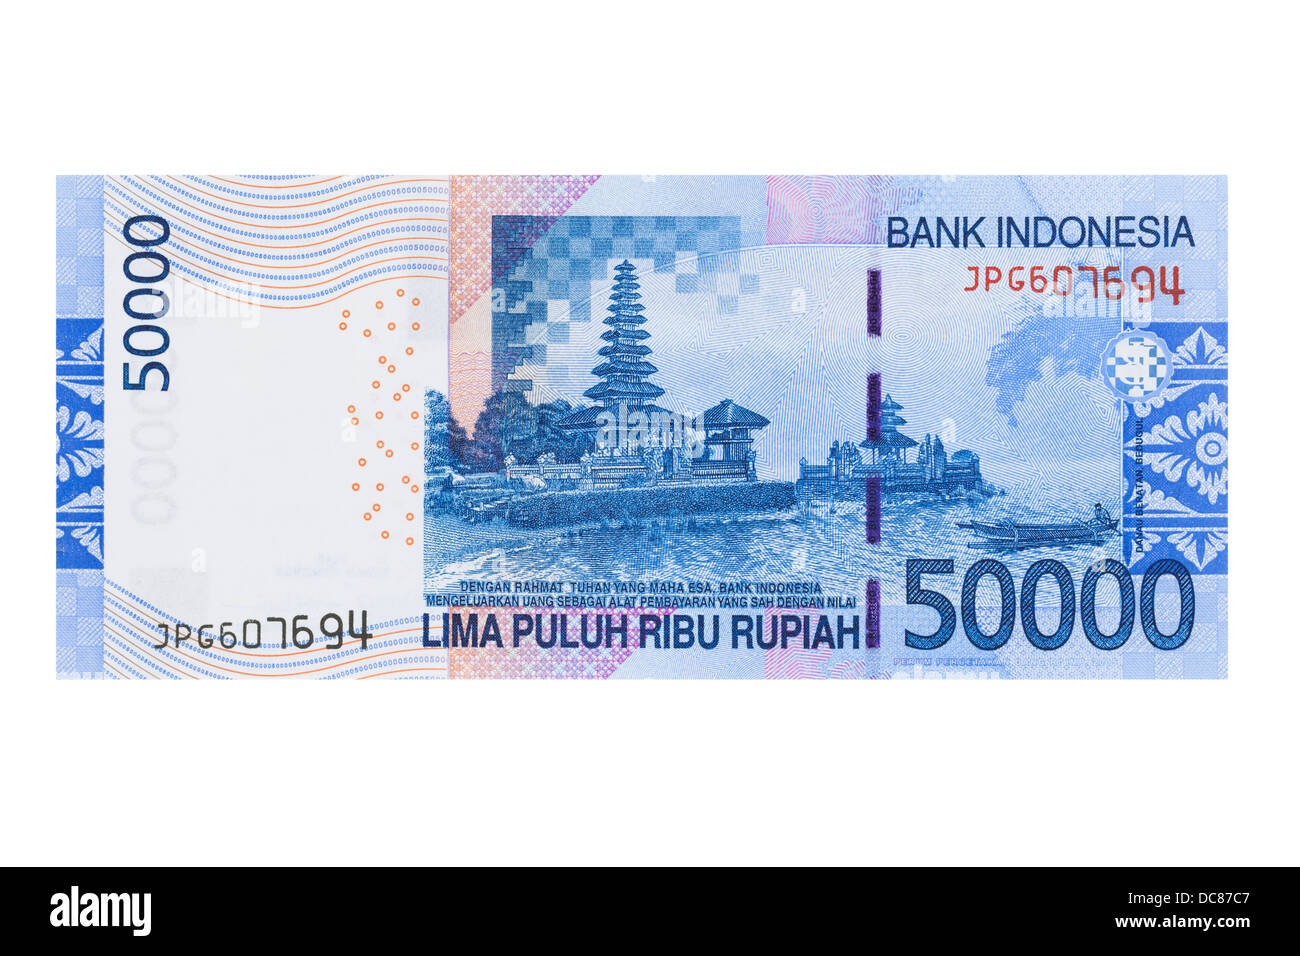 Indonesian fifty thousand rupiah note on a white background - Stock Image